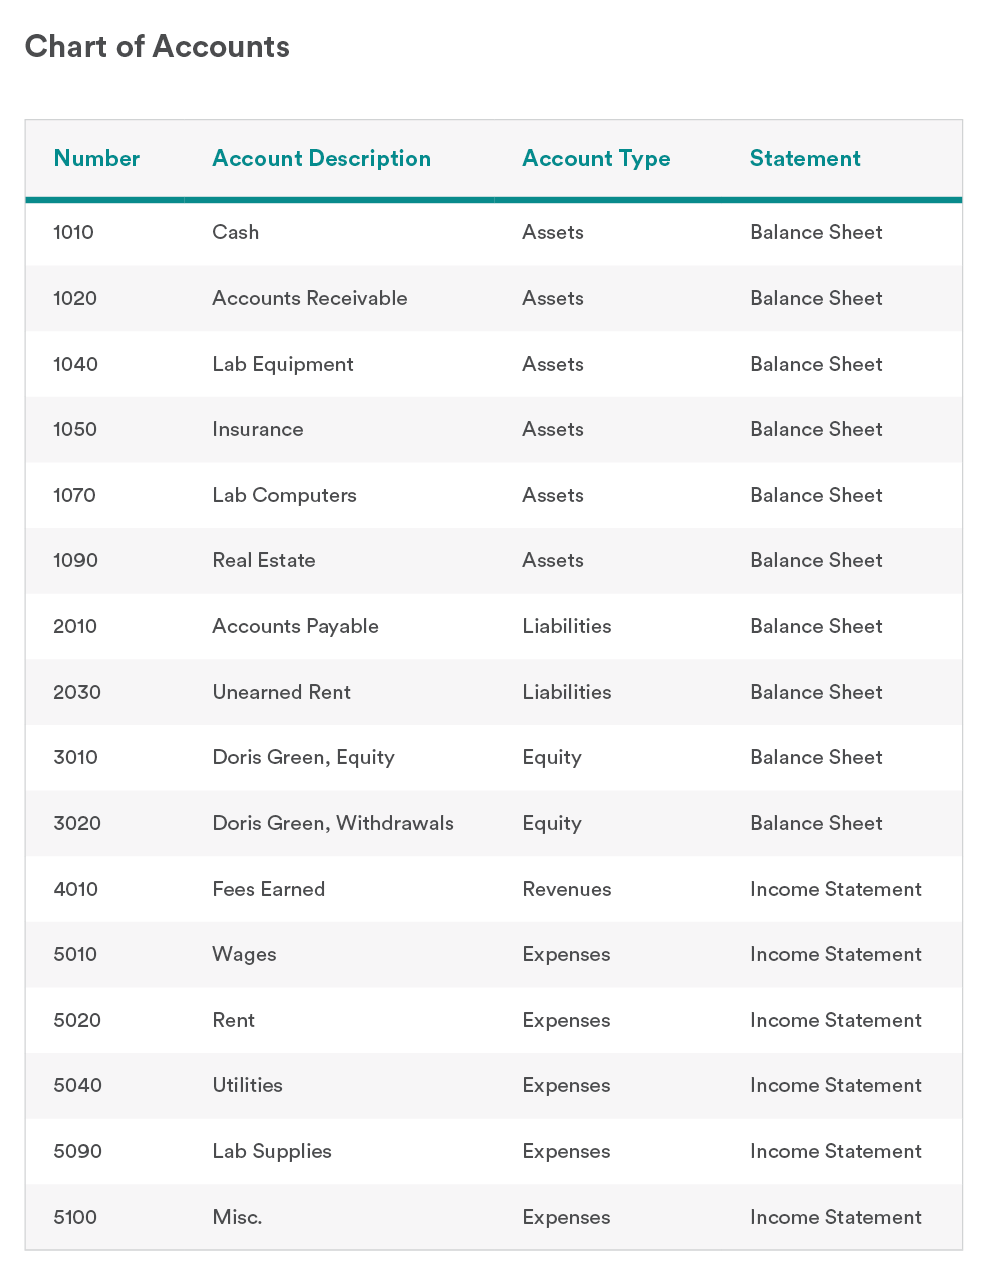 Chart of Accounts A Simple Guide (With Examples) Bench